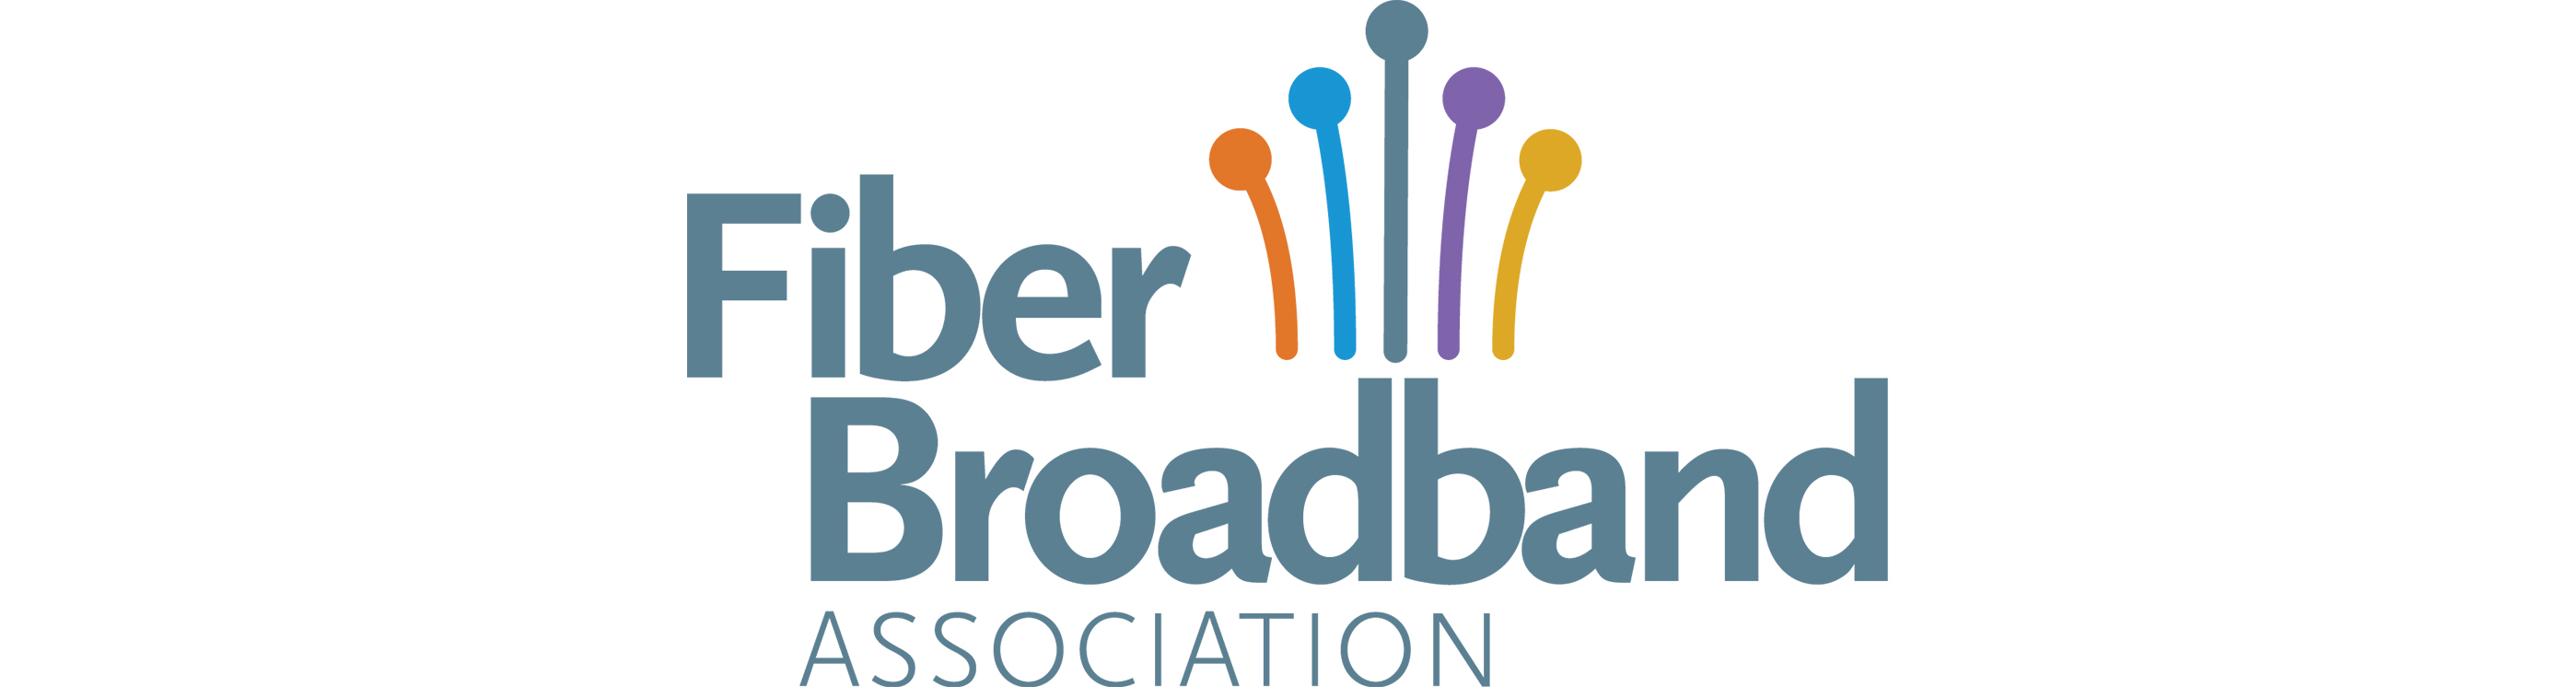 Fiber Broadband Association Releases Inaugural Fiber Guide (blog image)